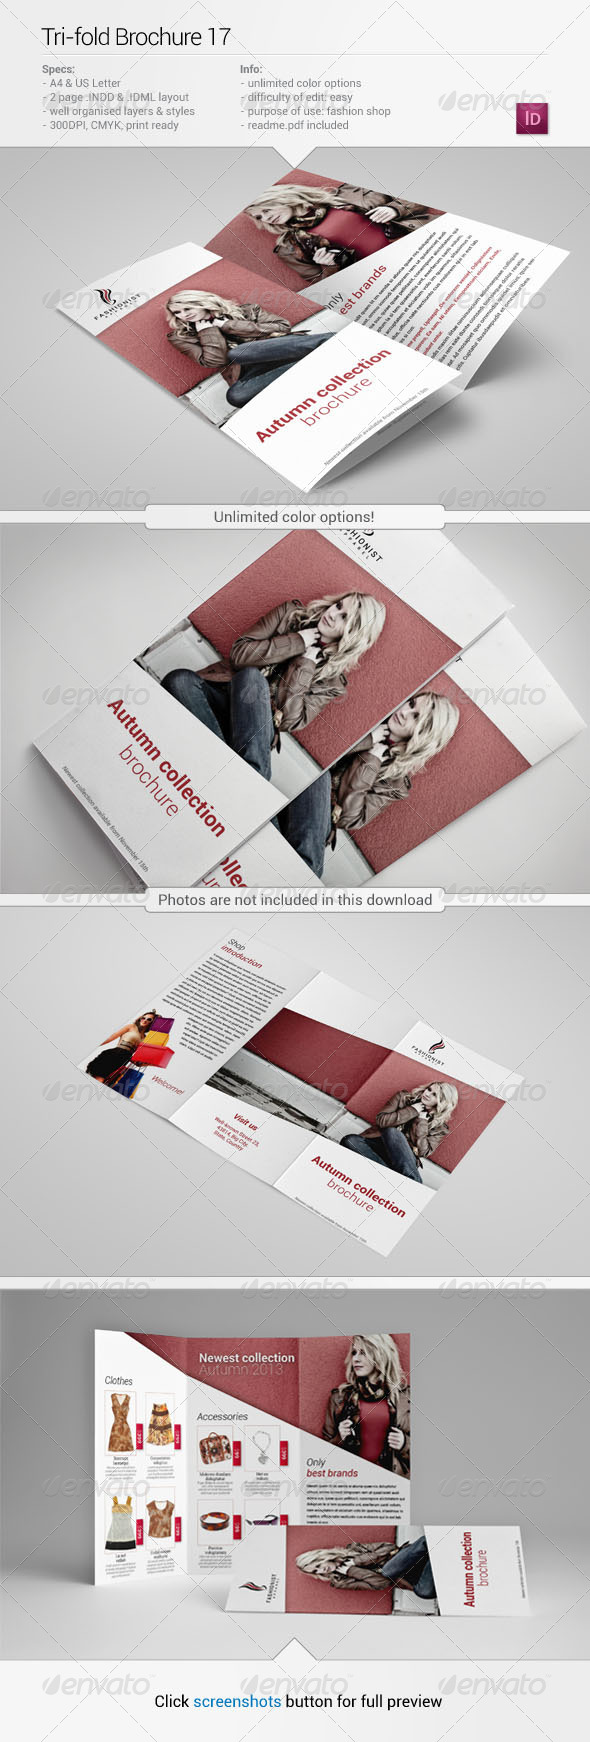 GraphicRiver Tri-Fold Brochure 17 5935537